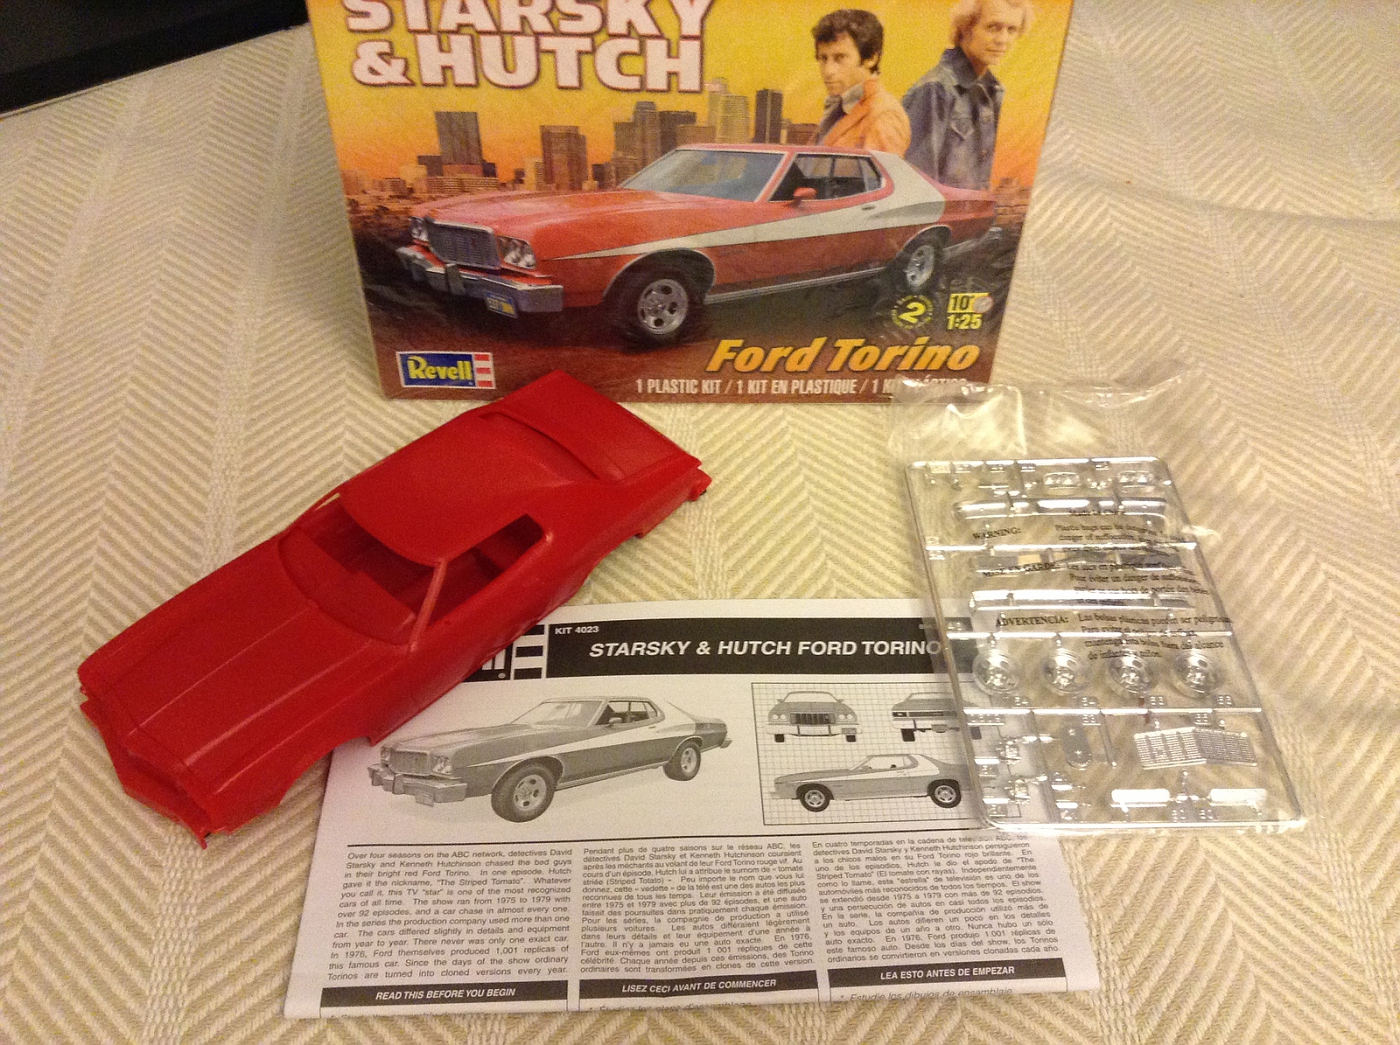 new model car kit releasesQuick Overview Revell Starsky  Hutch Torino  Car Kit News